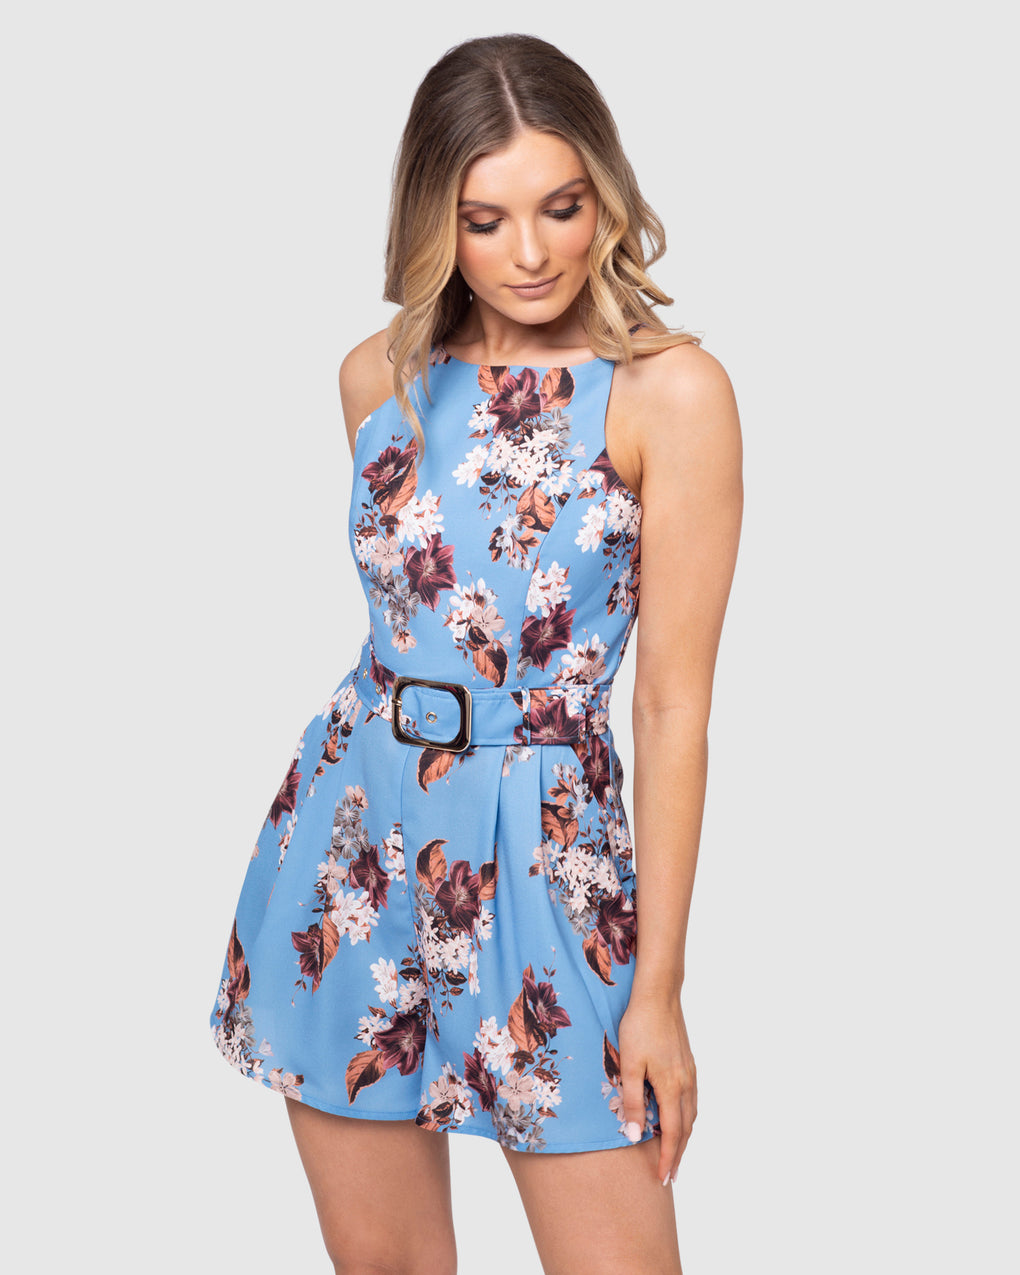 Abelarda Playsuit